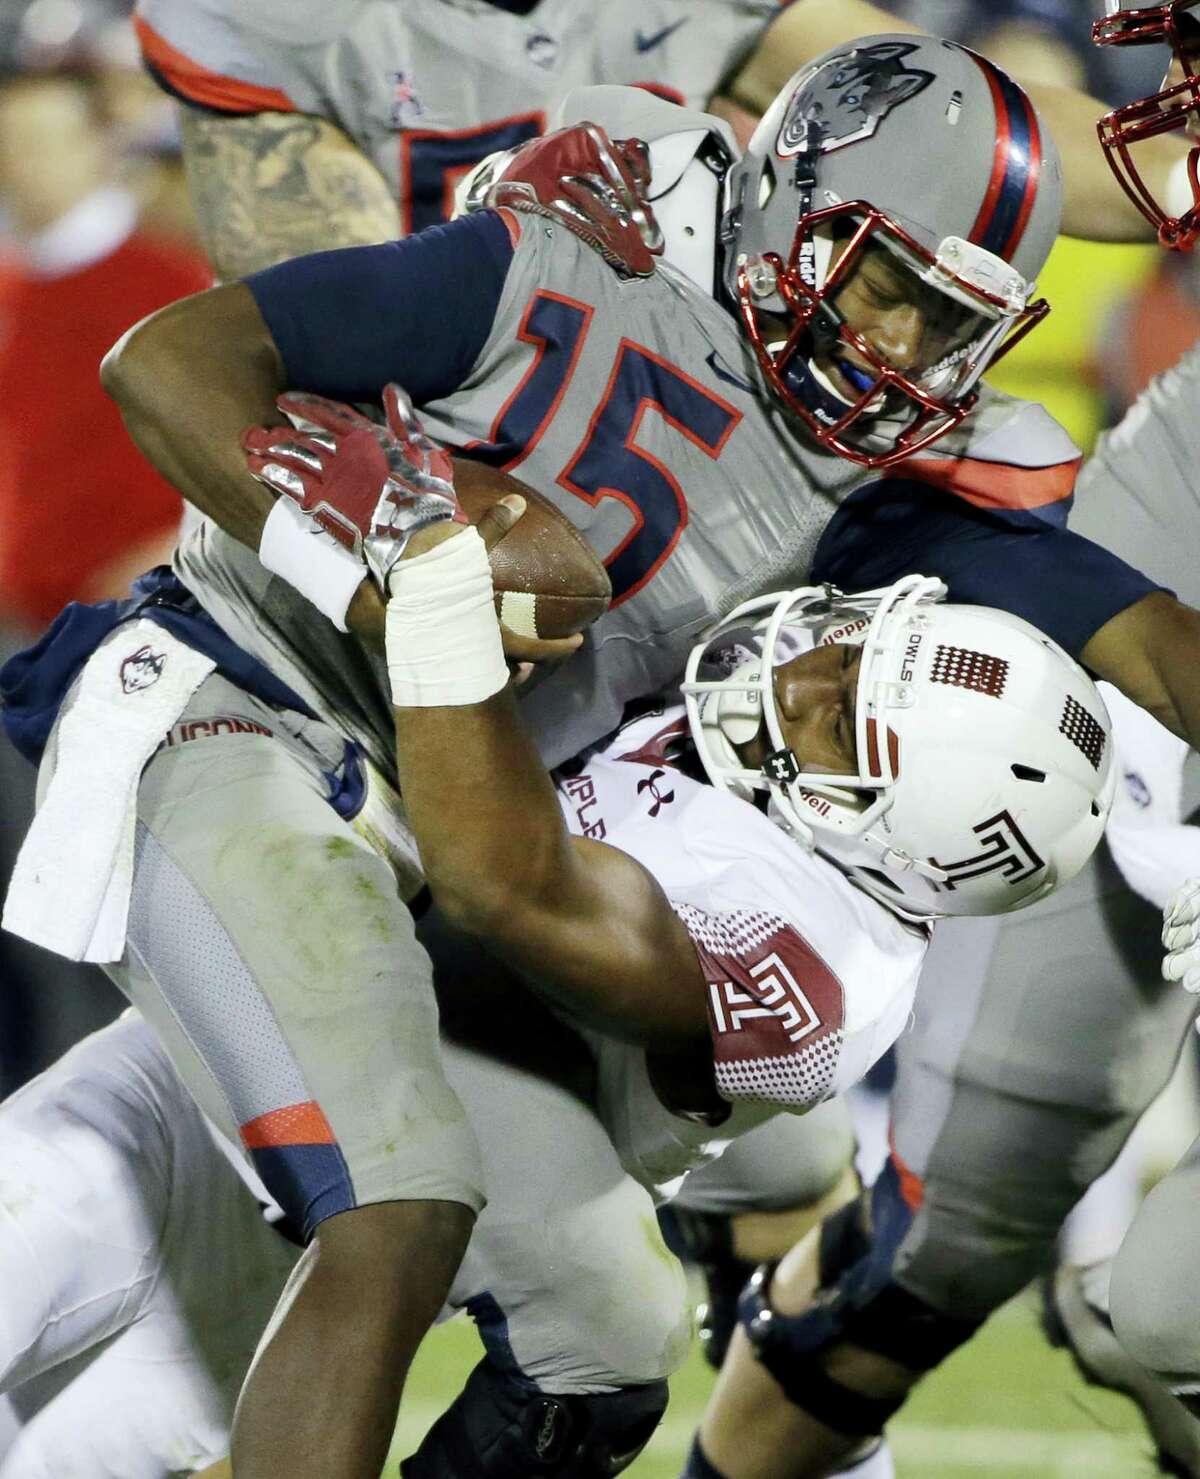 UConn quarterback Donovan Williams is brought down by Temple defensive lineman Haason Reddick during Friday night's game.